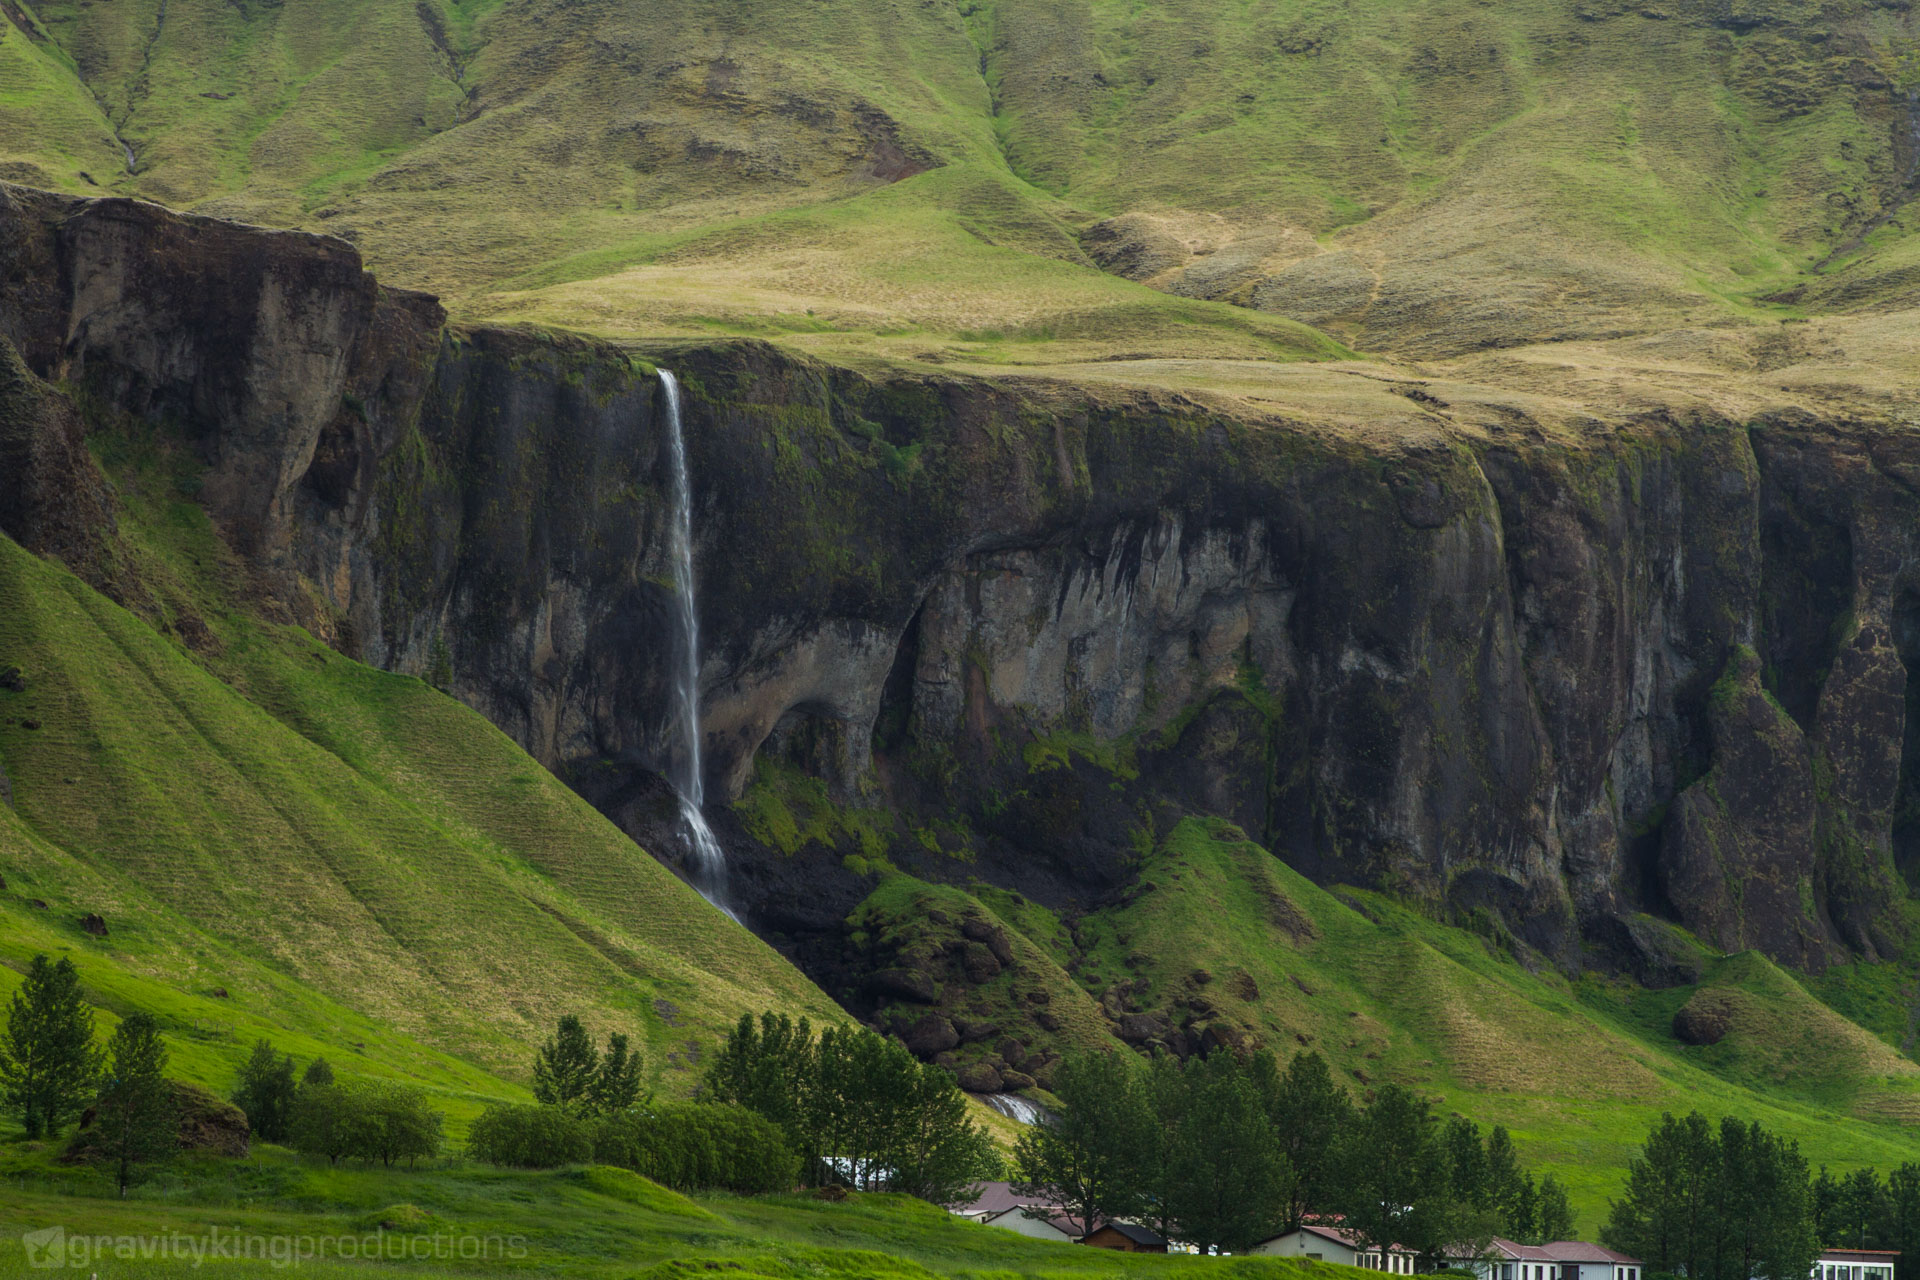 One of many beautiful wateralls in Iceland. Couldn't even find the name of this one.